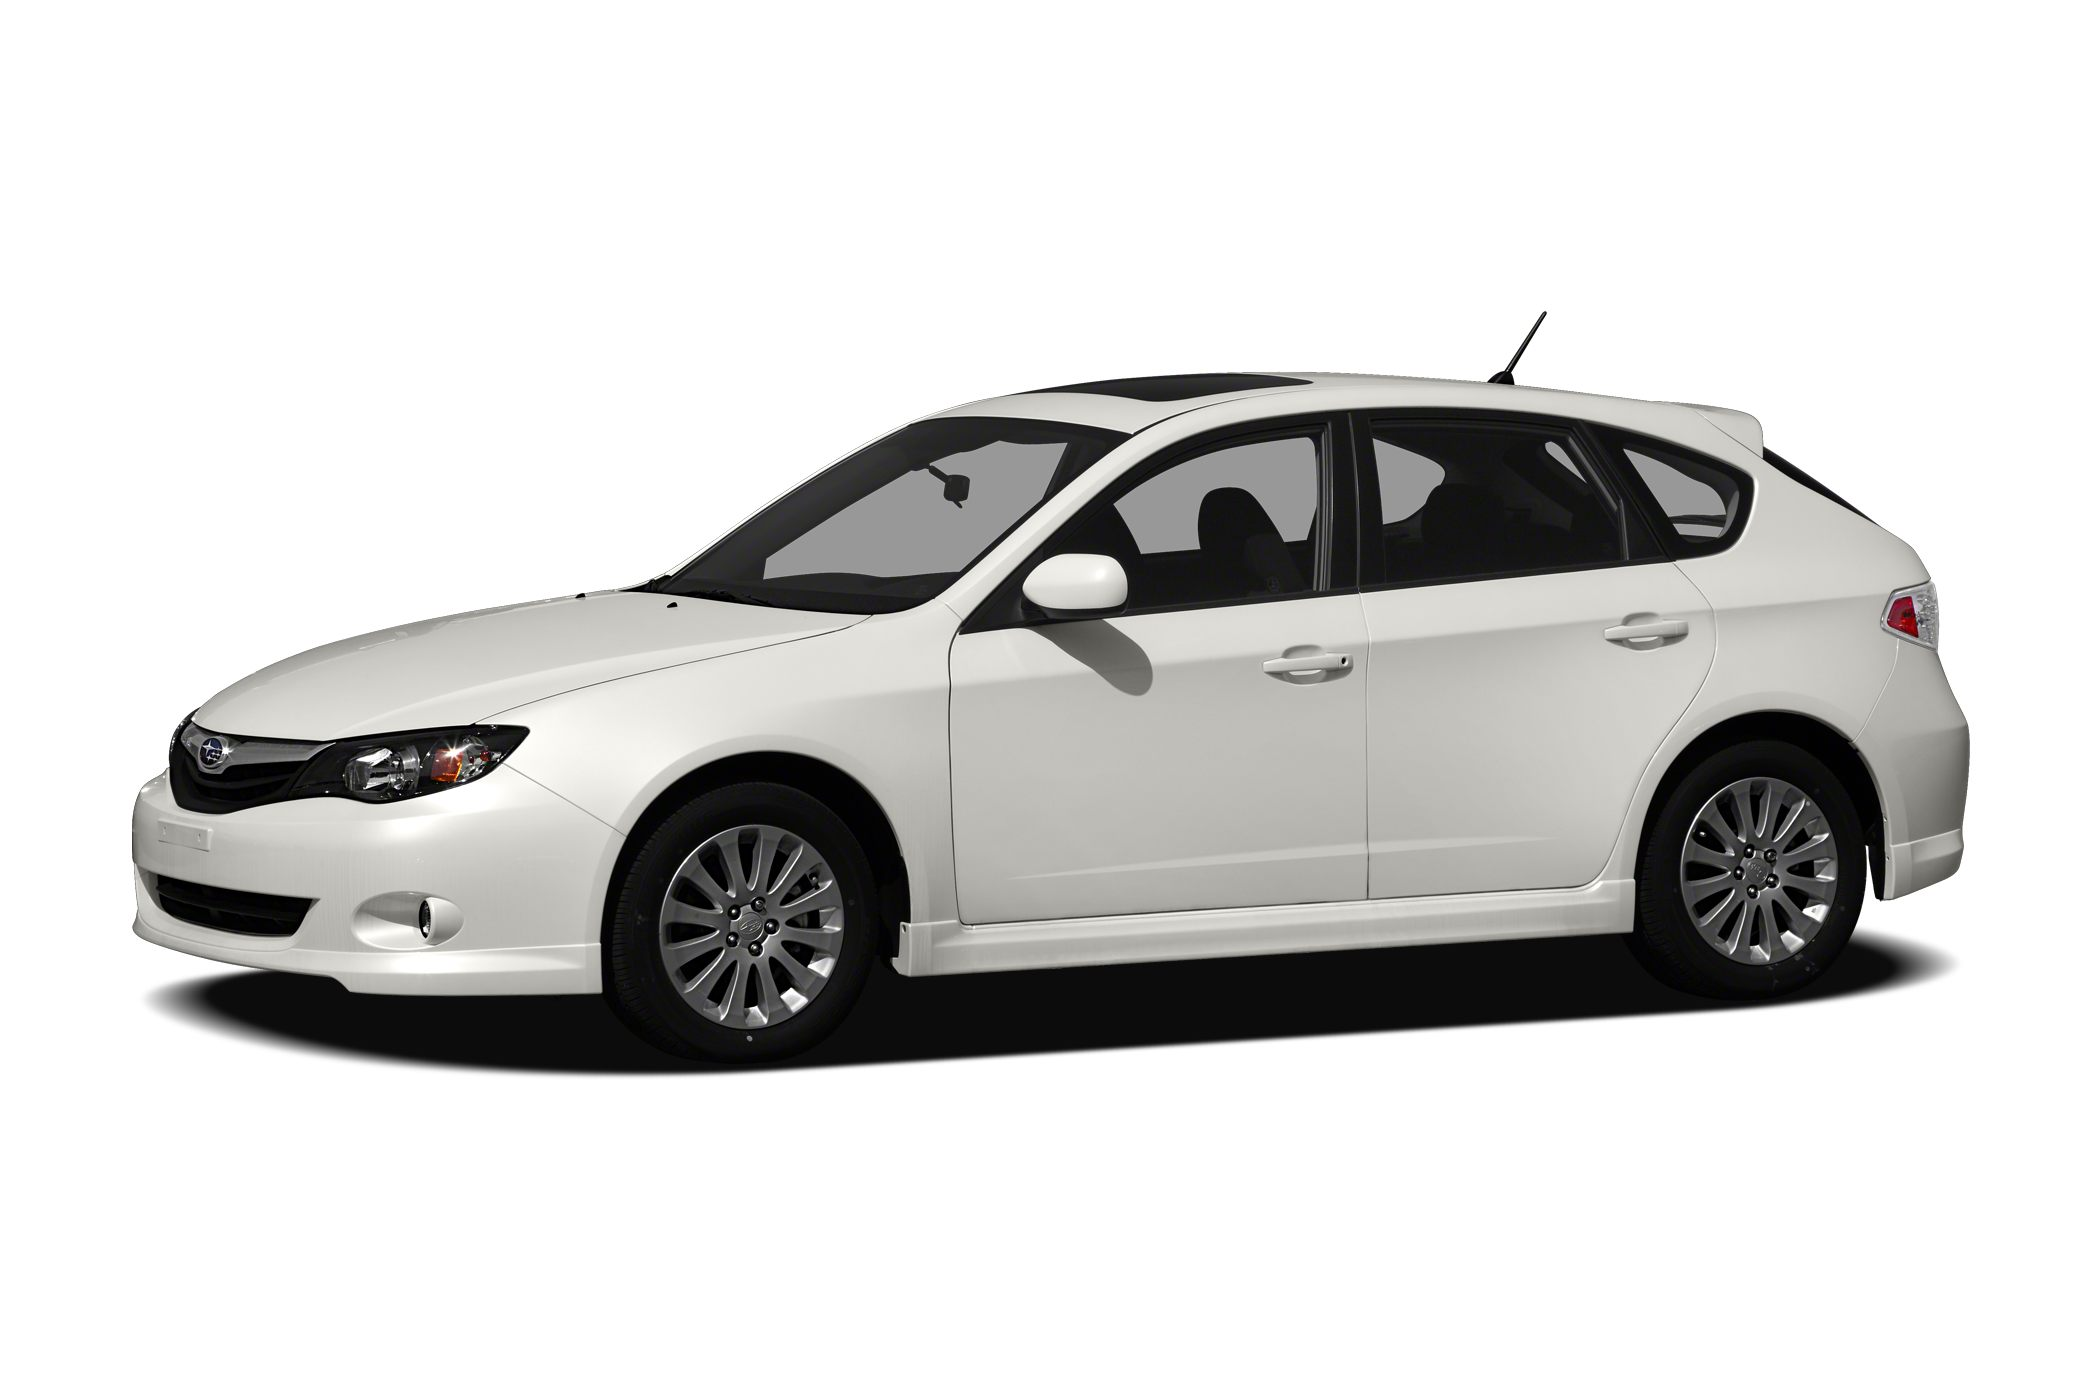 2011 Subaru Impreza 25i Premium  ONE PRICE STOP NO HASSLE NO HAGGLE CAR BUYING EXPERIENCE